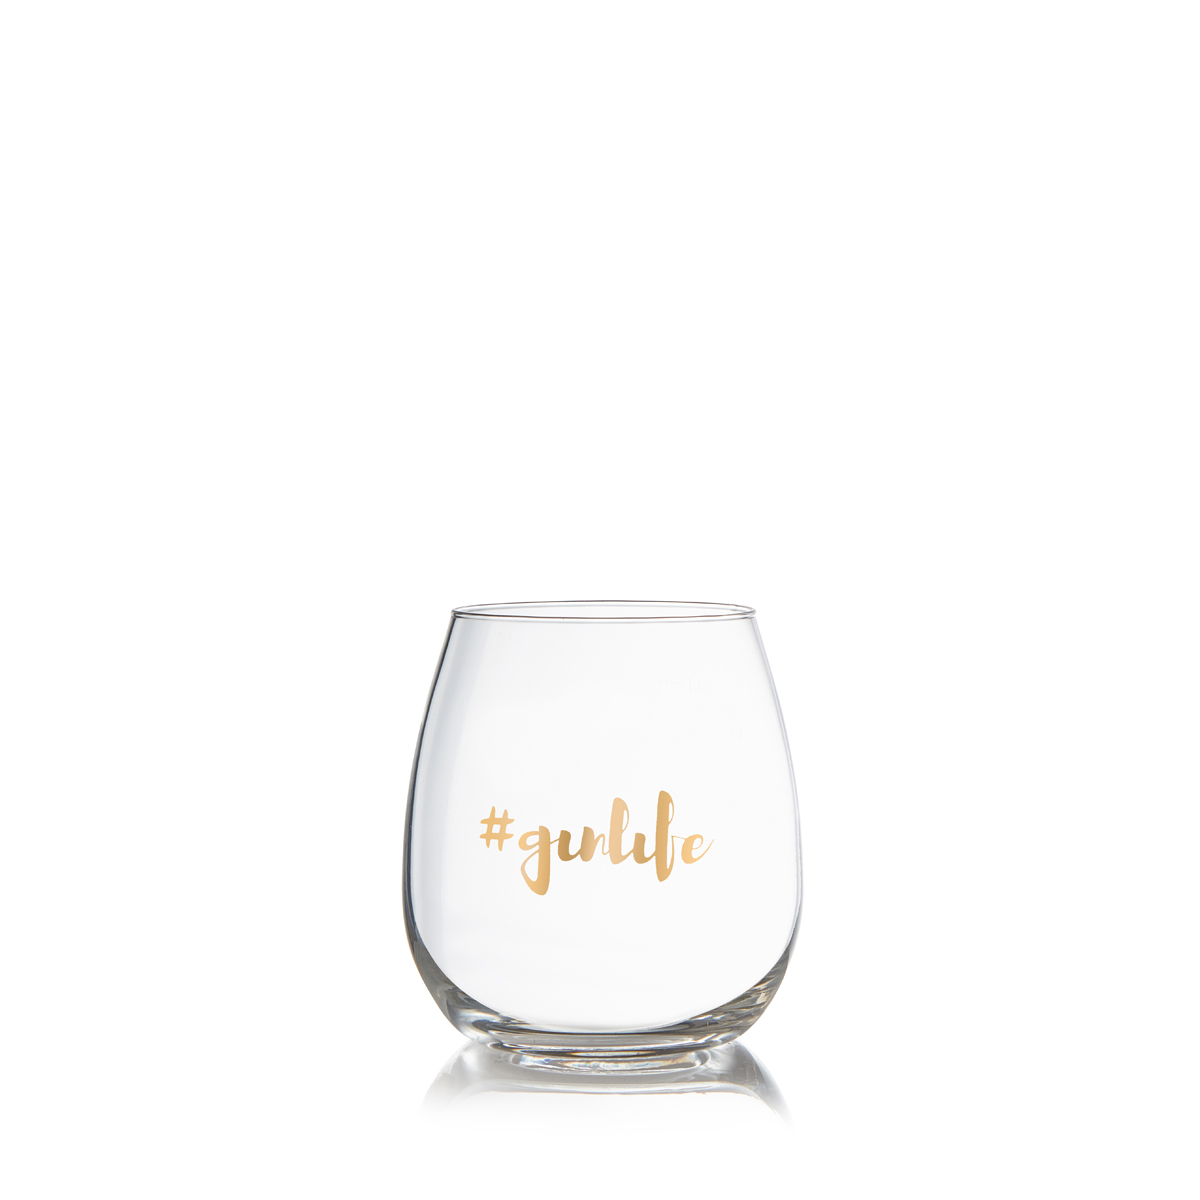 Glassware - Gin Tumblers 2 Pack: Gold #ginlife